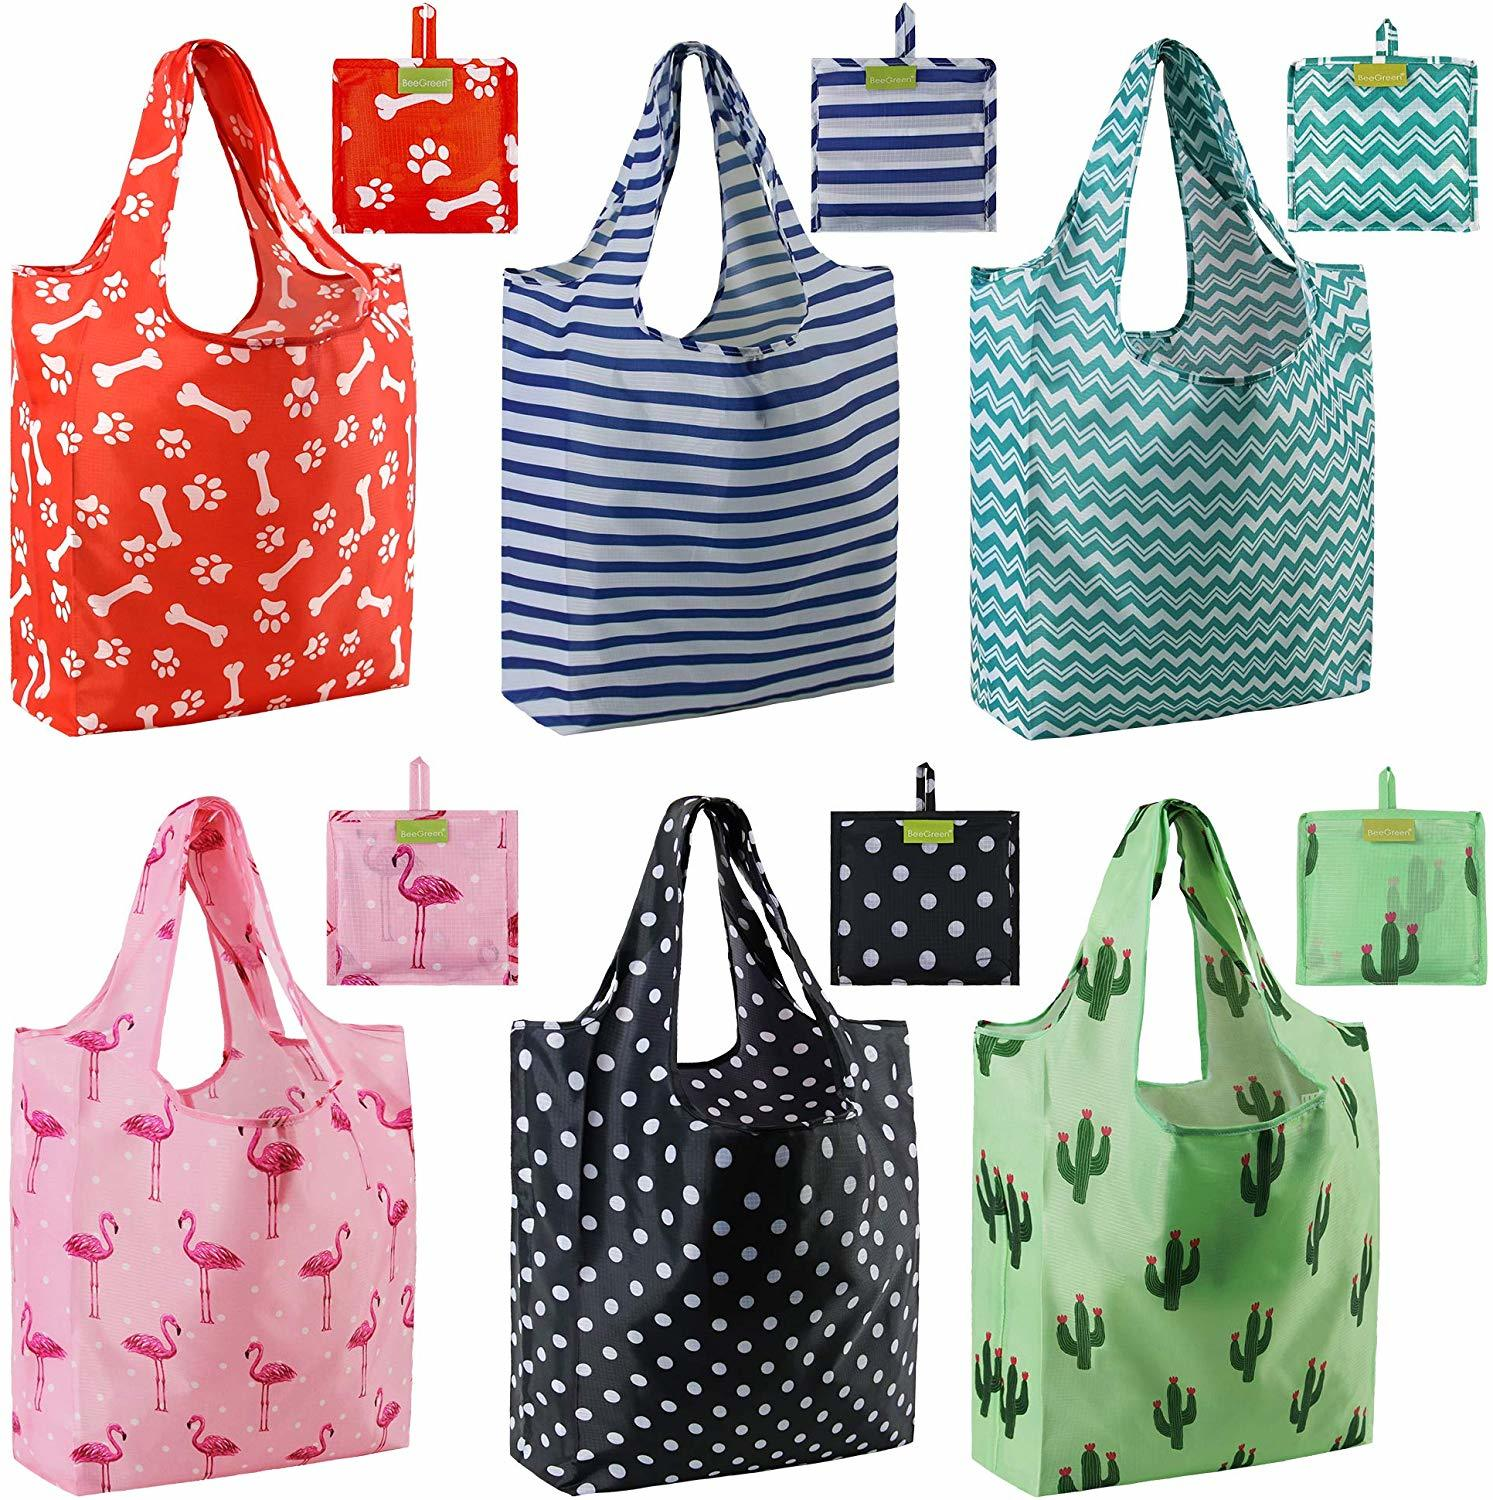 cute patterned reusable grocery bags